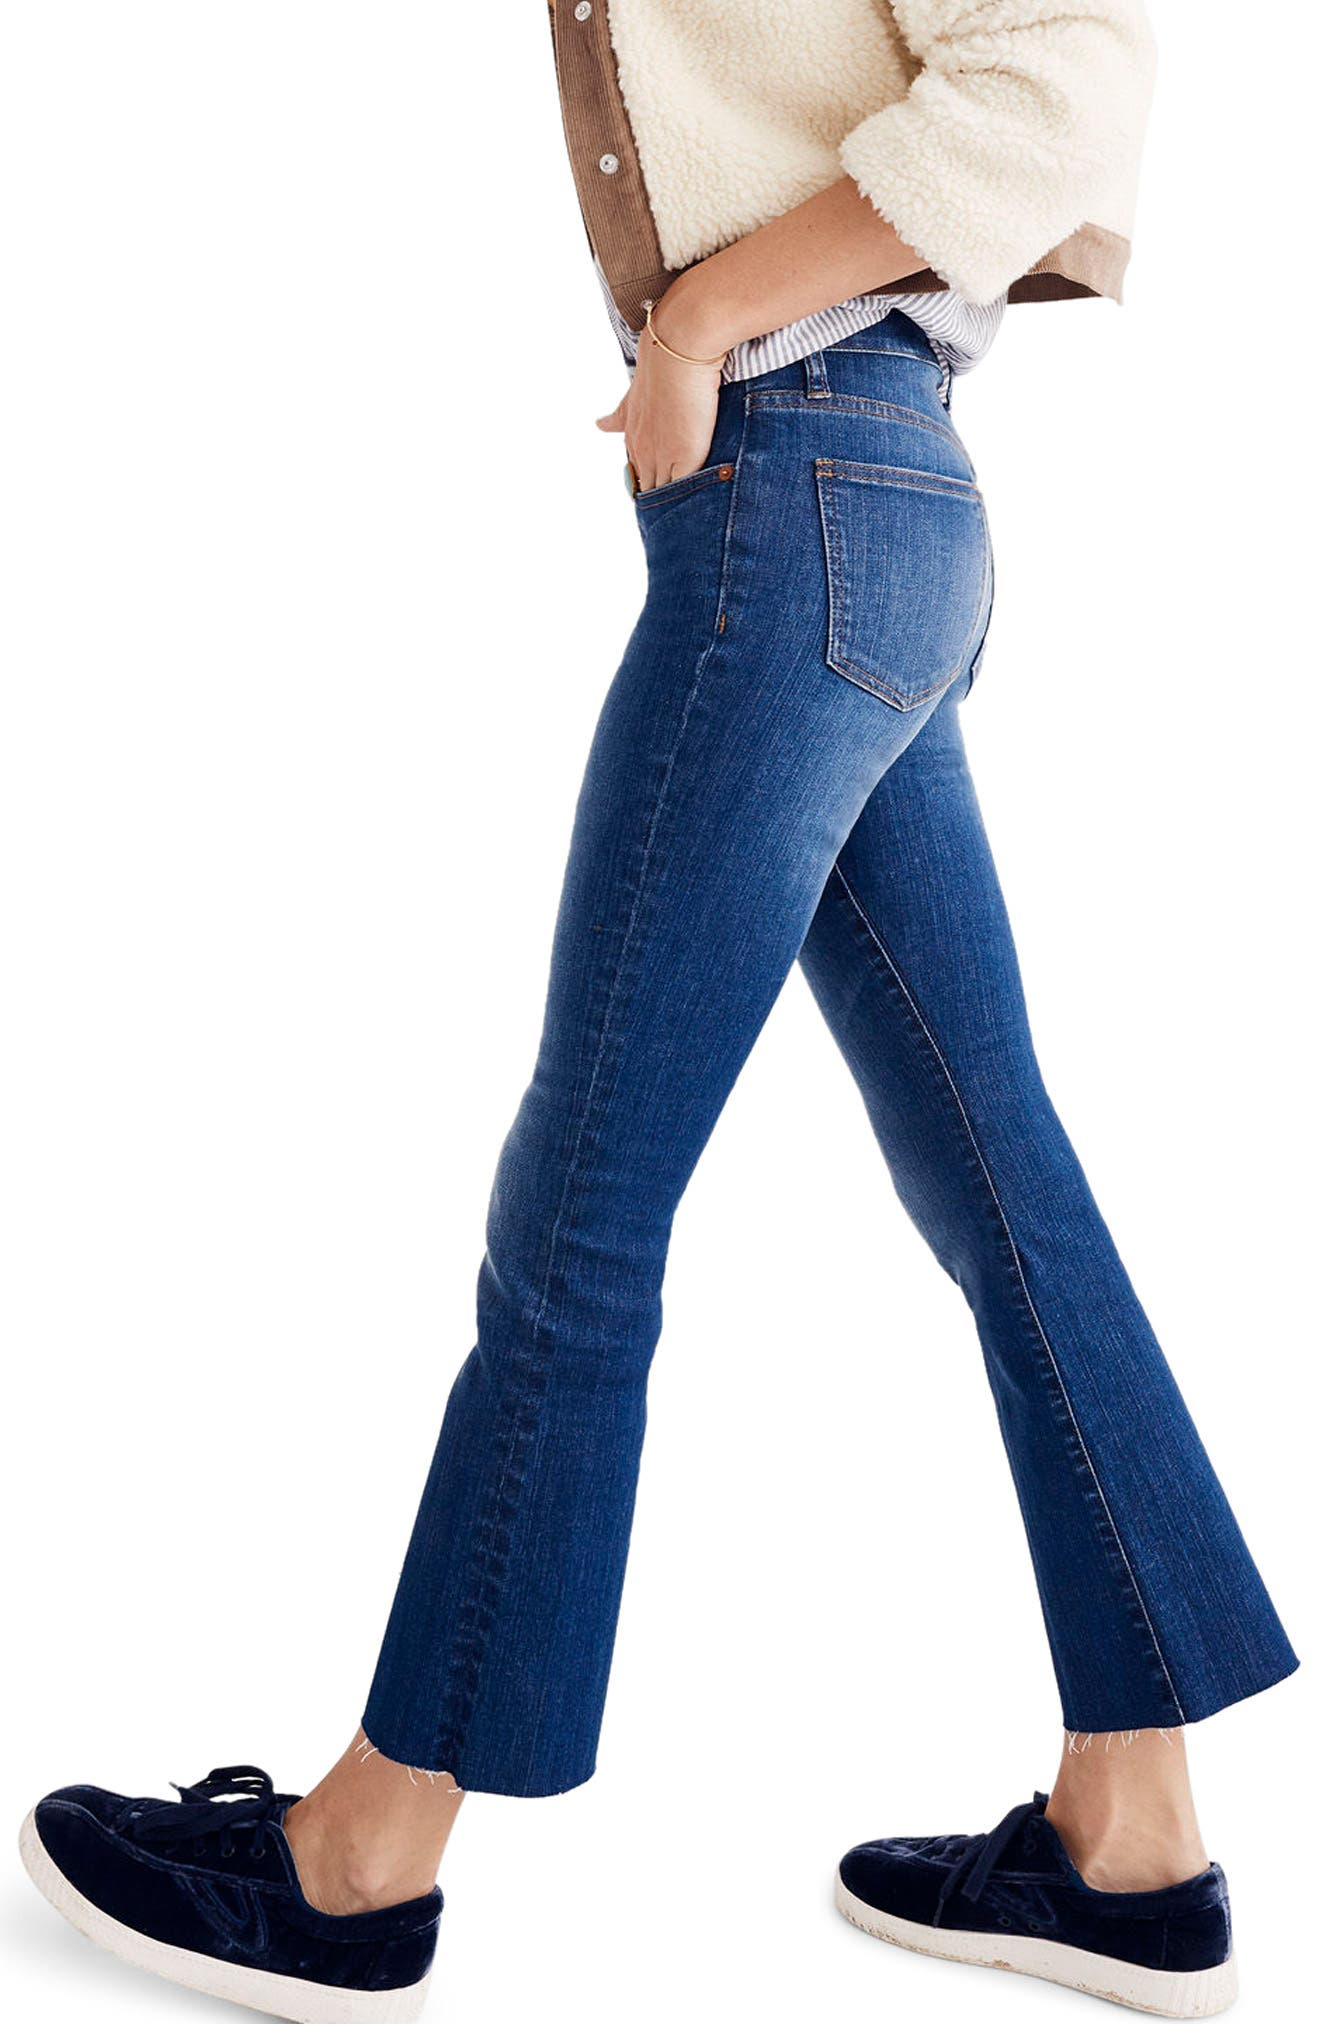 Cali Demi Boot Jeans,                             Alternate thumbnail 3, color,                             Wyoming Wash